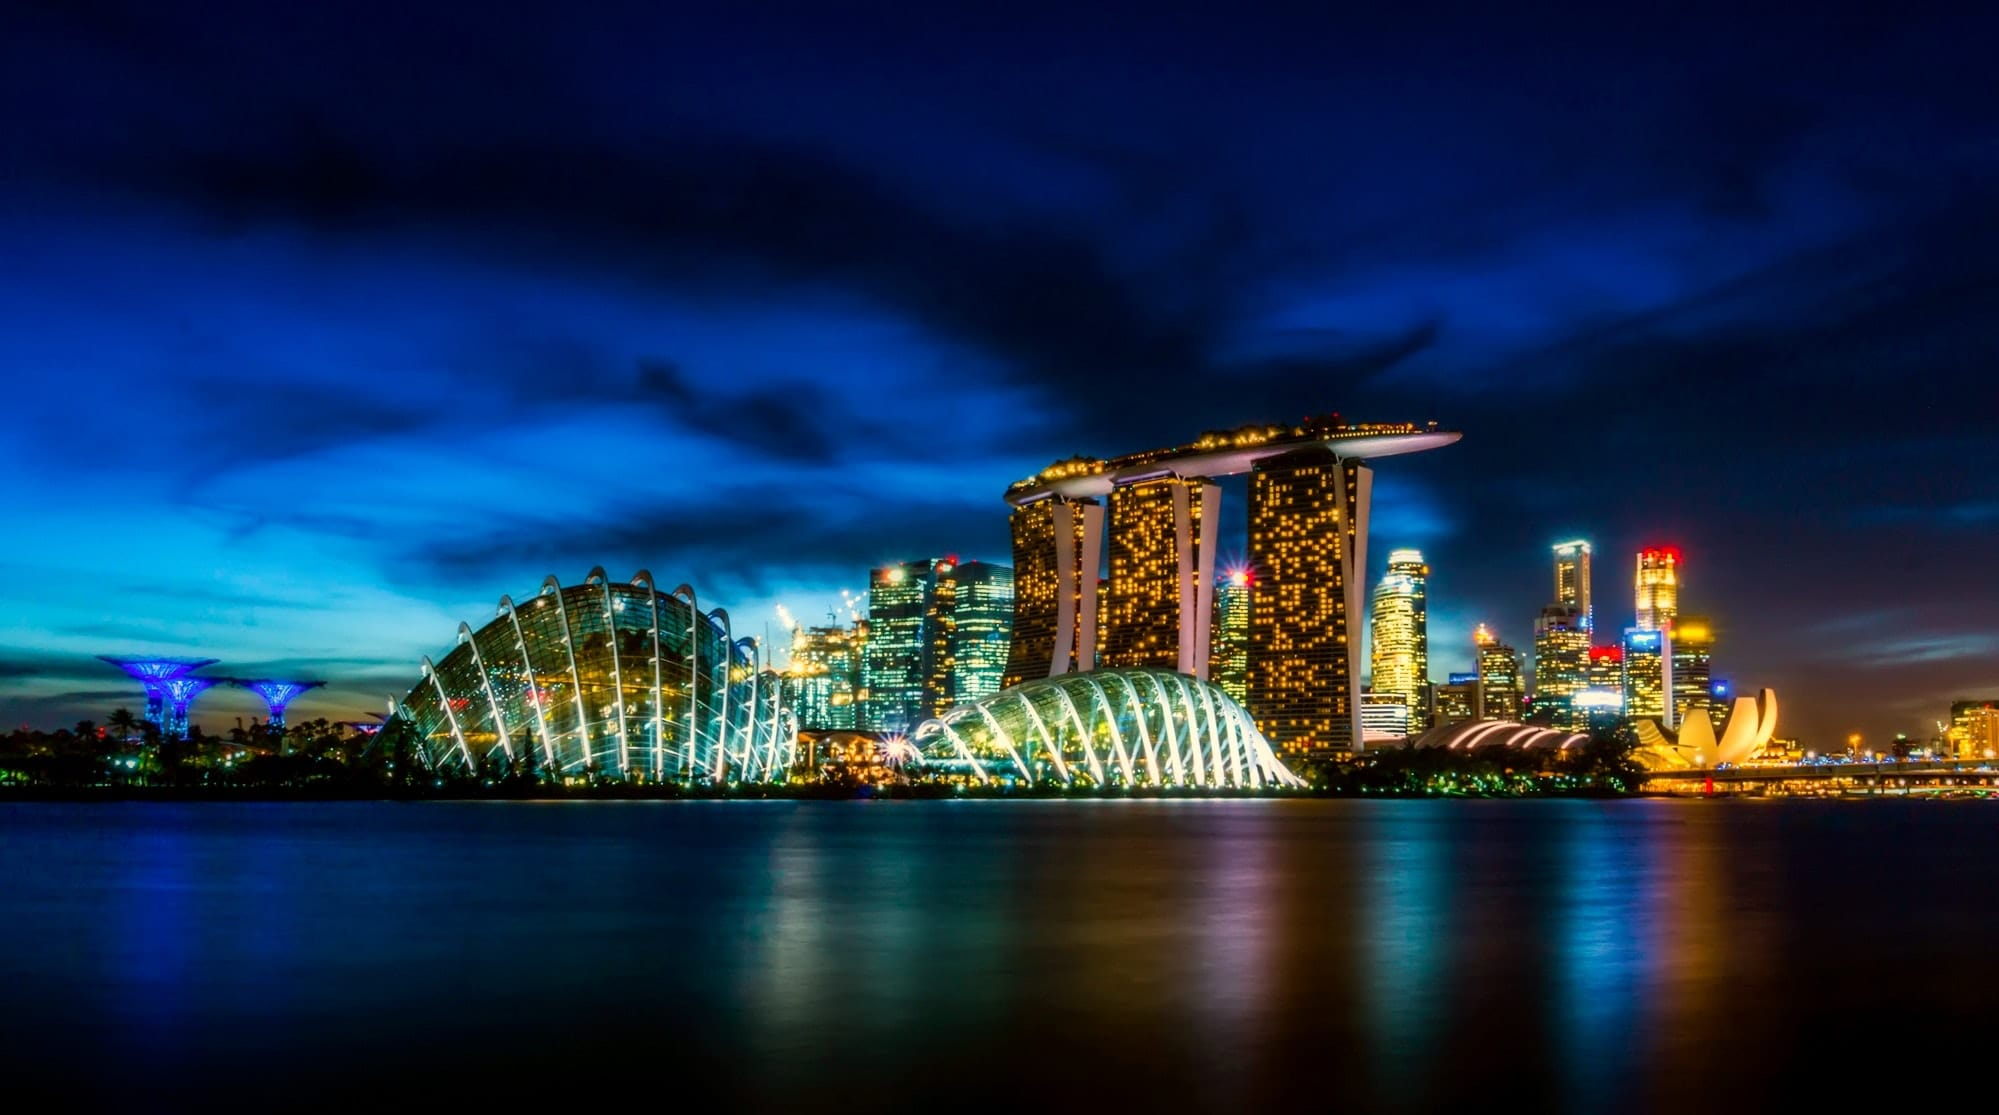 Singapore In 2020: Travel Guide, Places To Visit, Things To Do.... 1